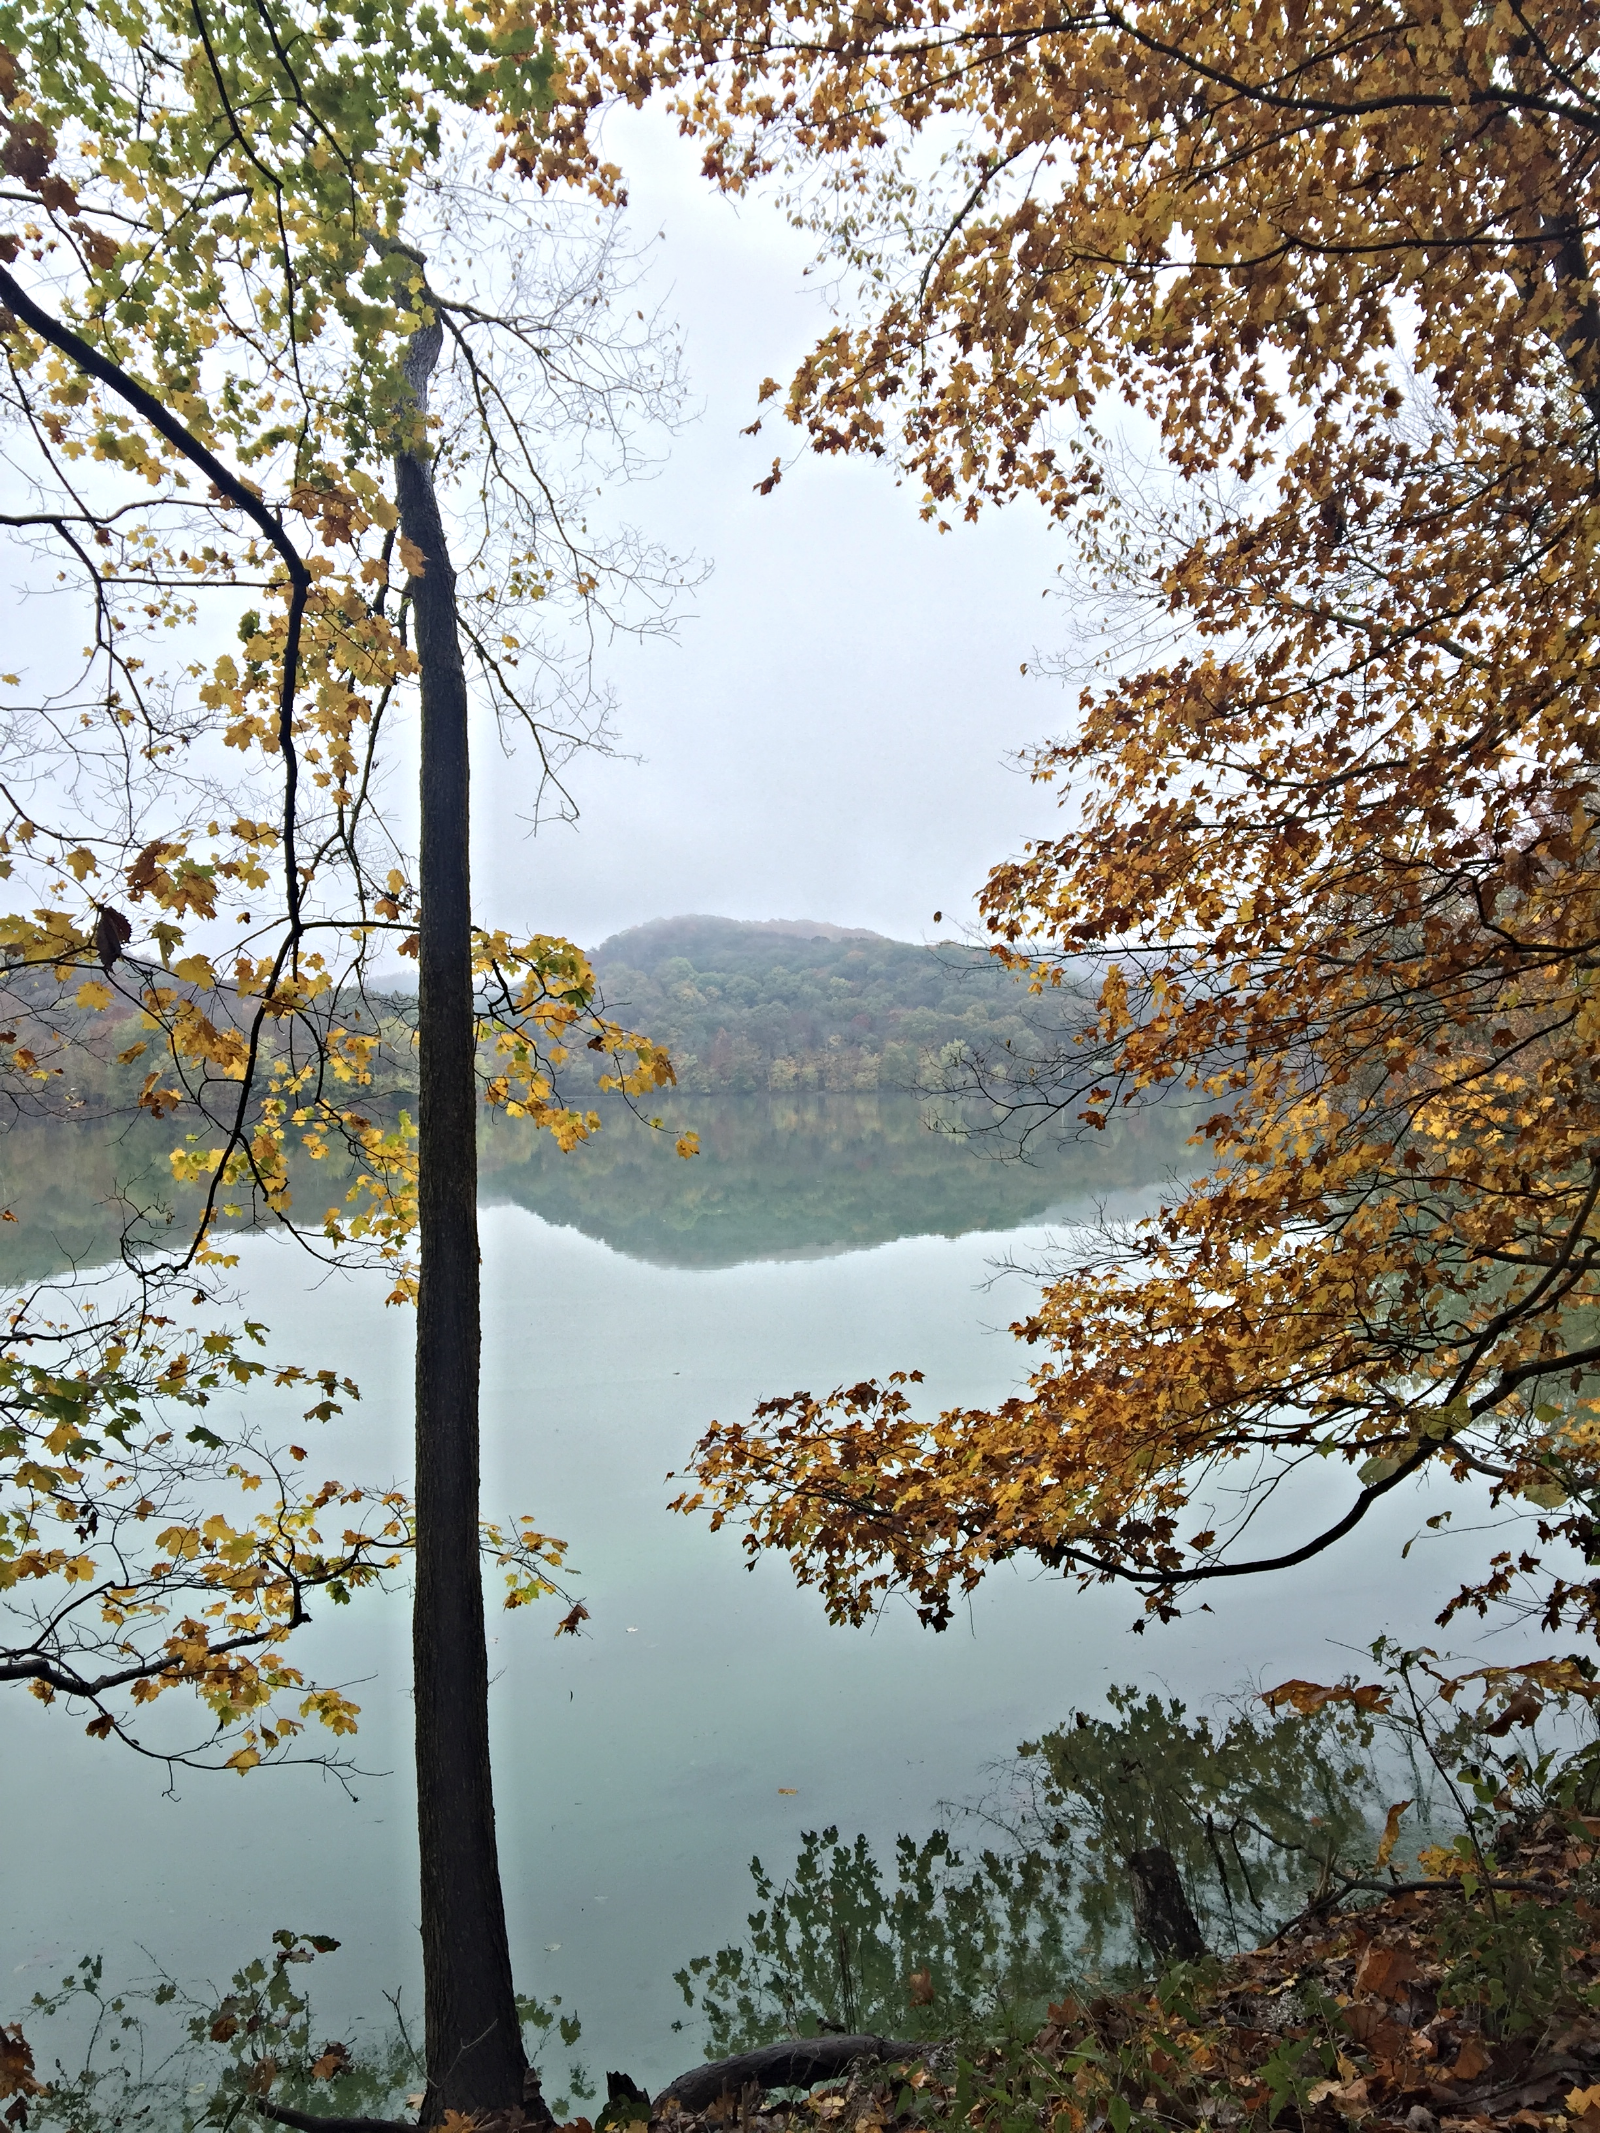 Picture of Radnor Lake courtesy of Brooke Stephens.